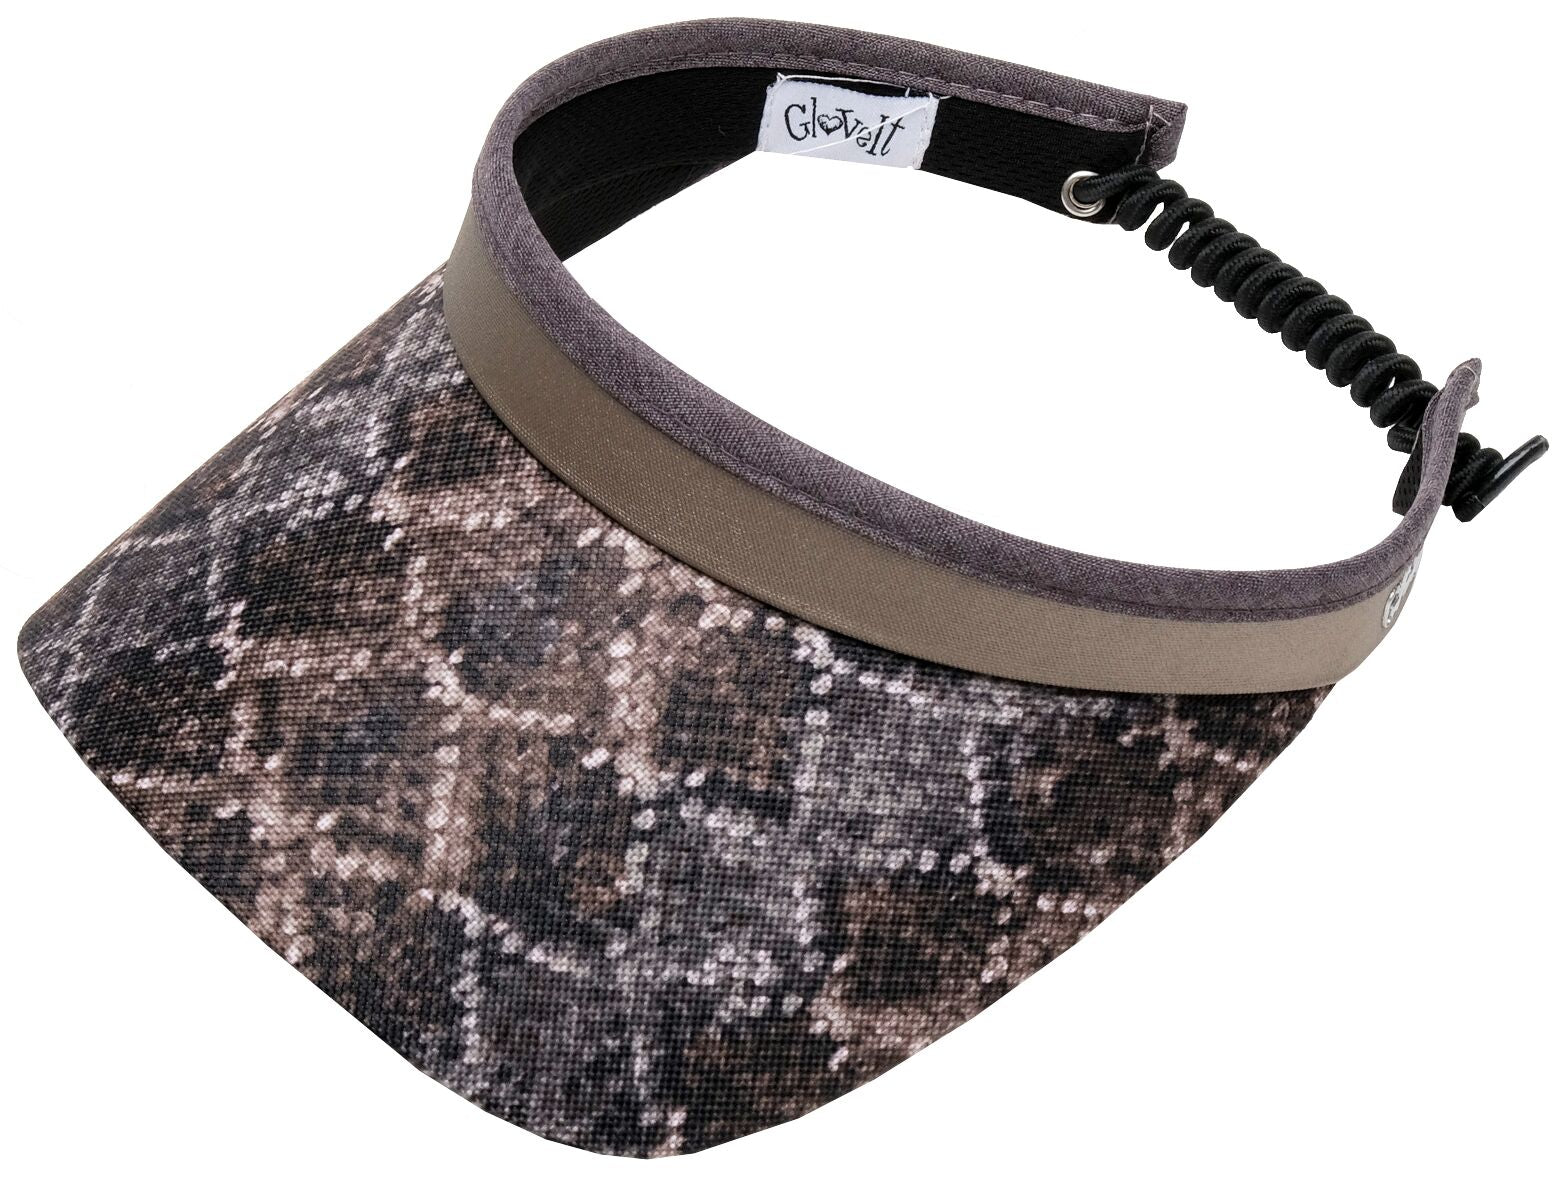 DIAMONDBACK Women's Golf Visor